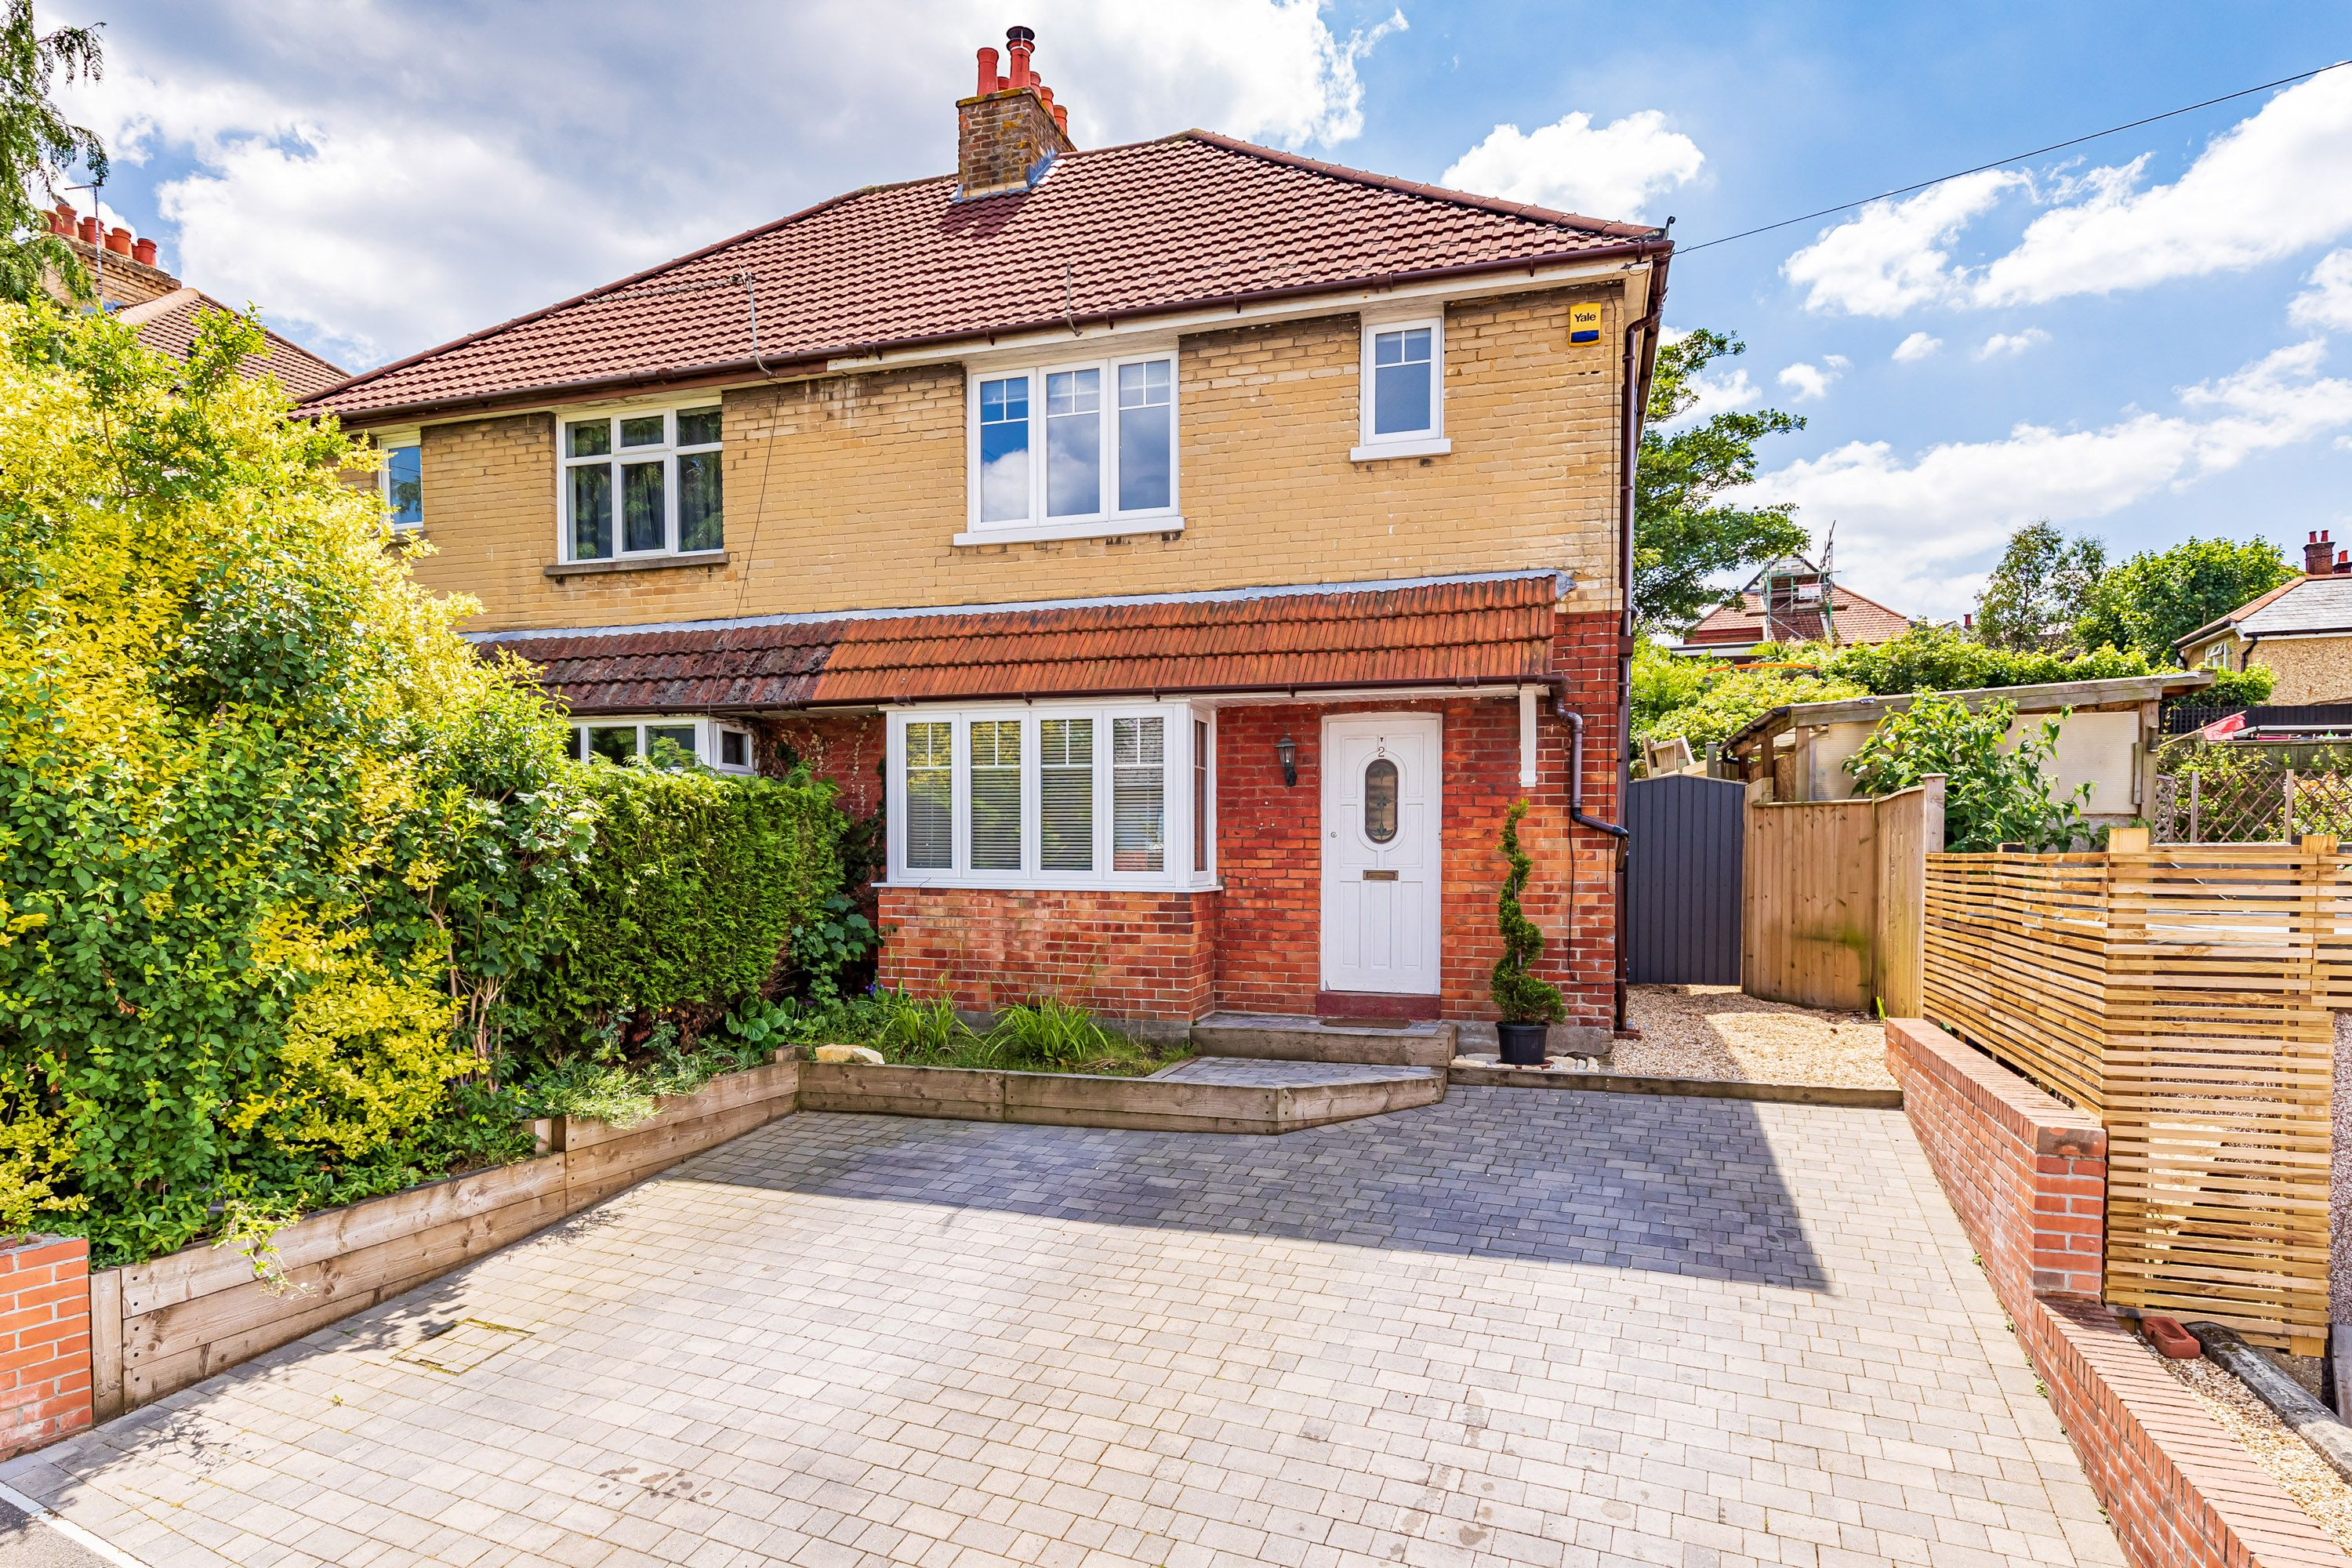 Family buyers looking to move into a freshly presented and low maintenance home in a convenient location will be instantly impressed with this property.